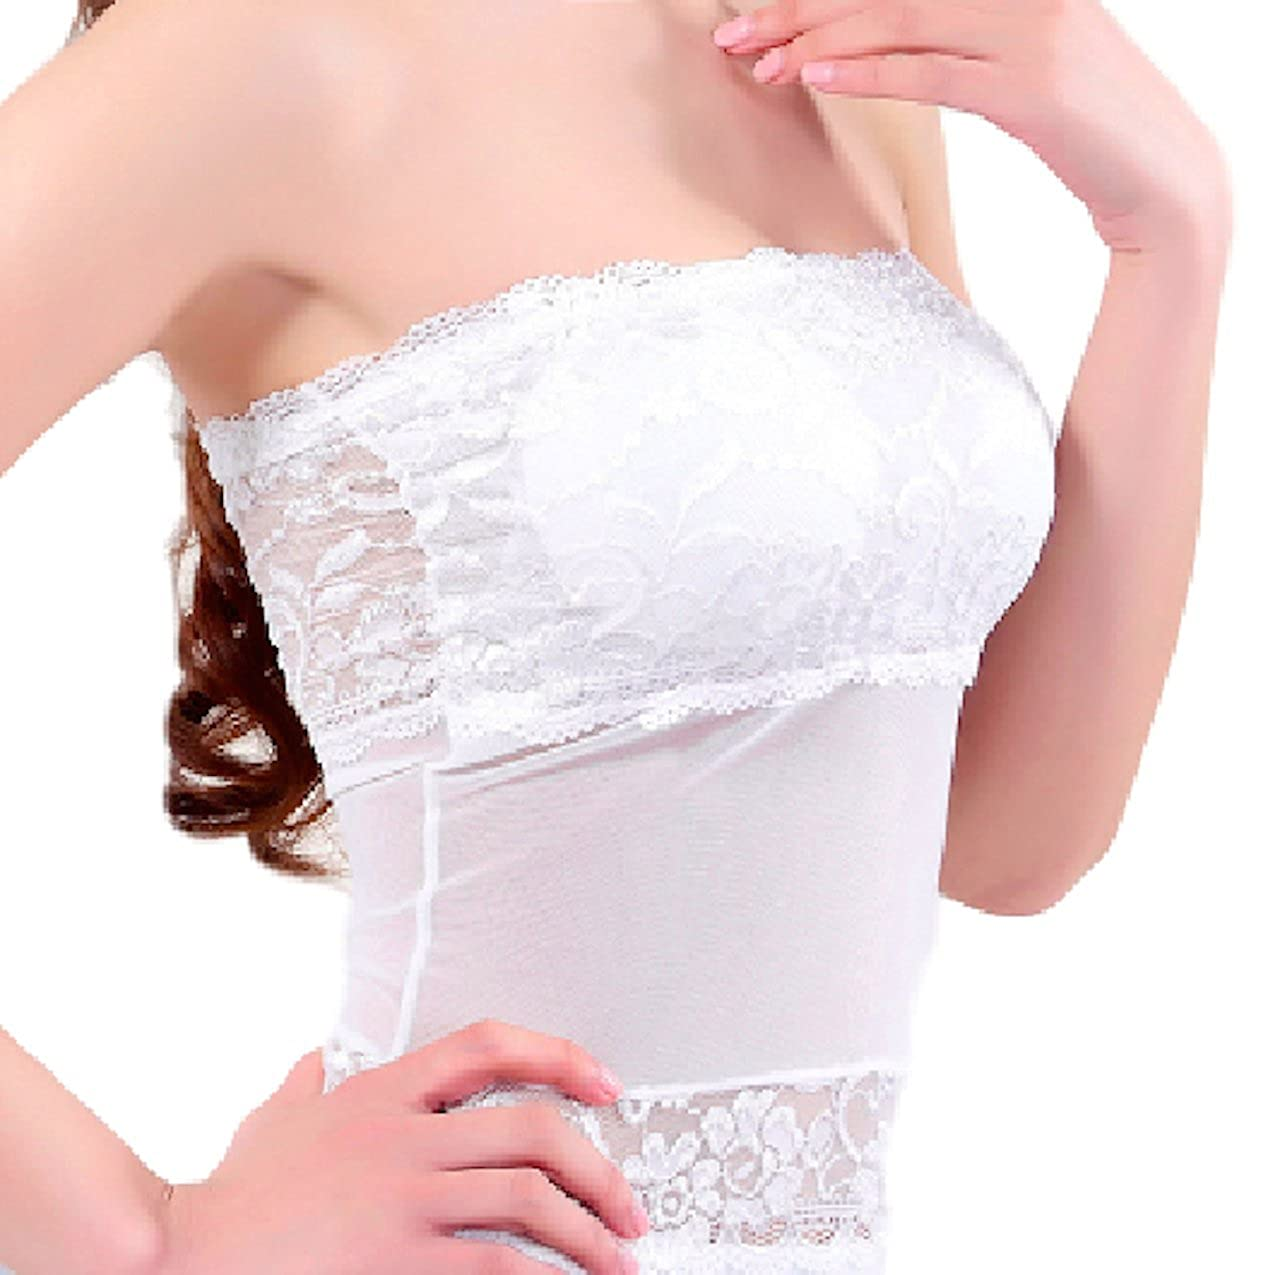 ts-store Stretch Tube Top Camisole Lace Bandeau 12 inches Long in The Dress Party